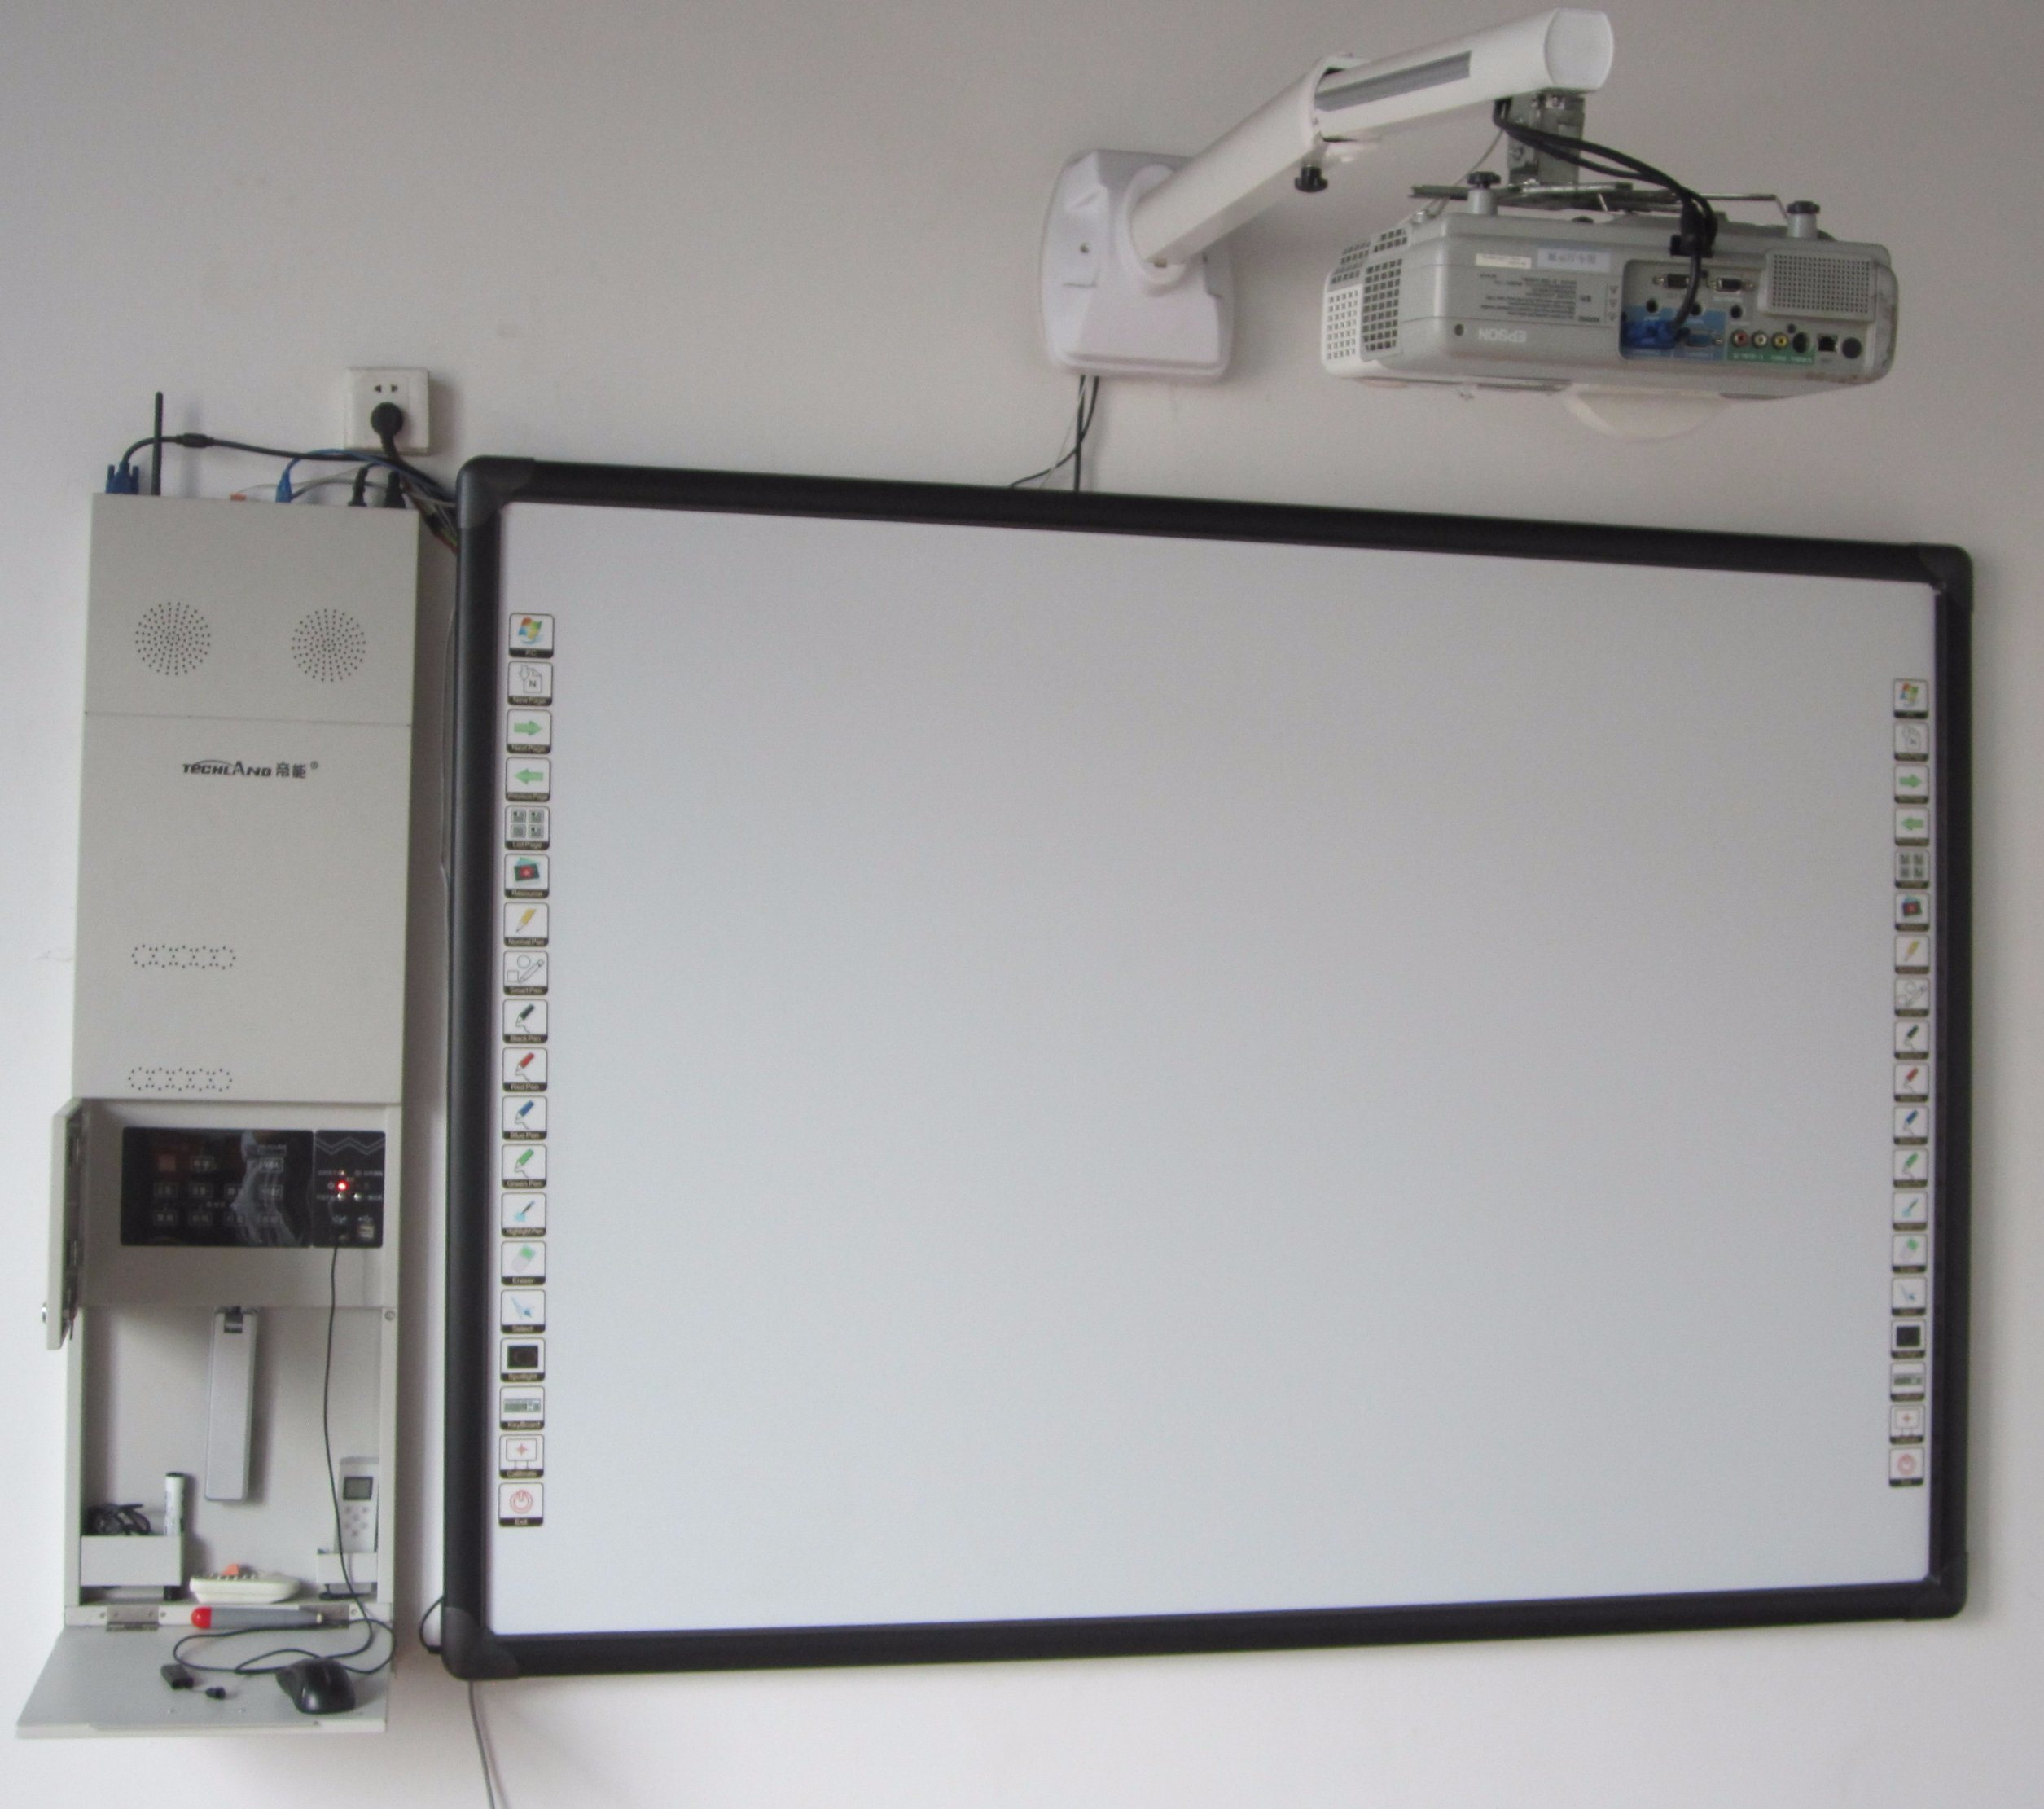 Interactive Whiteboard Smartboard for Digital Classroom